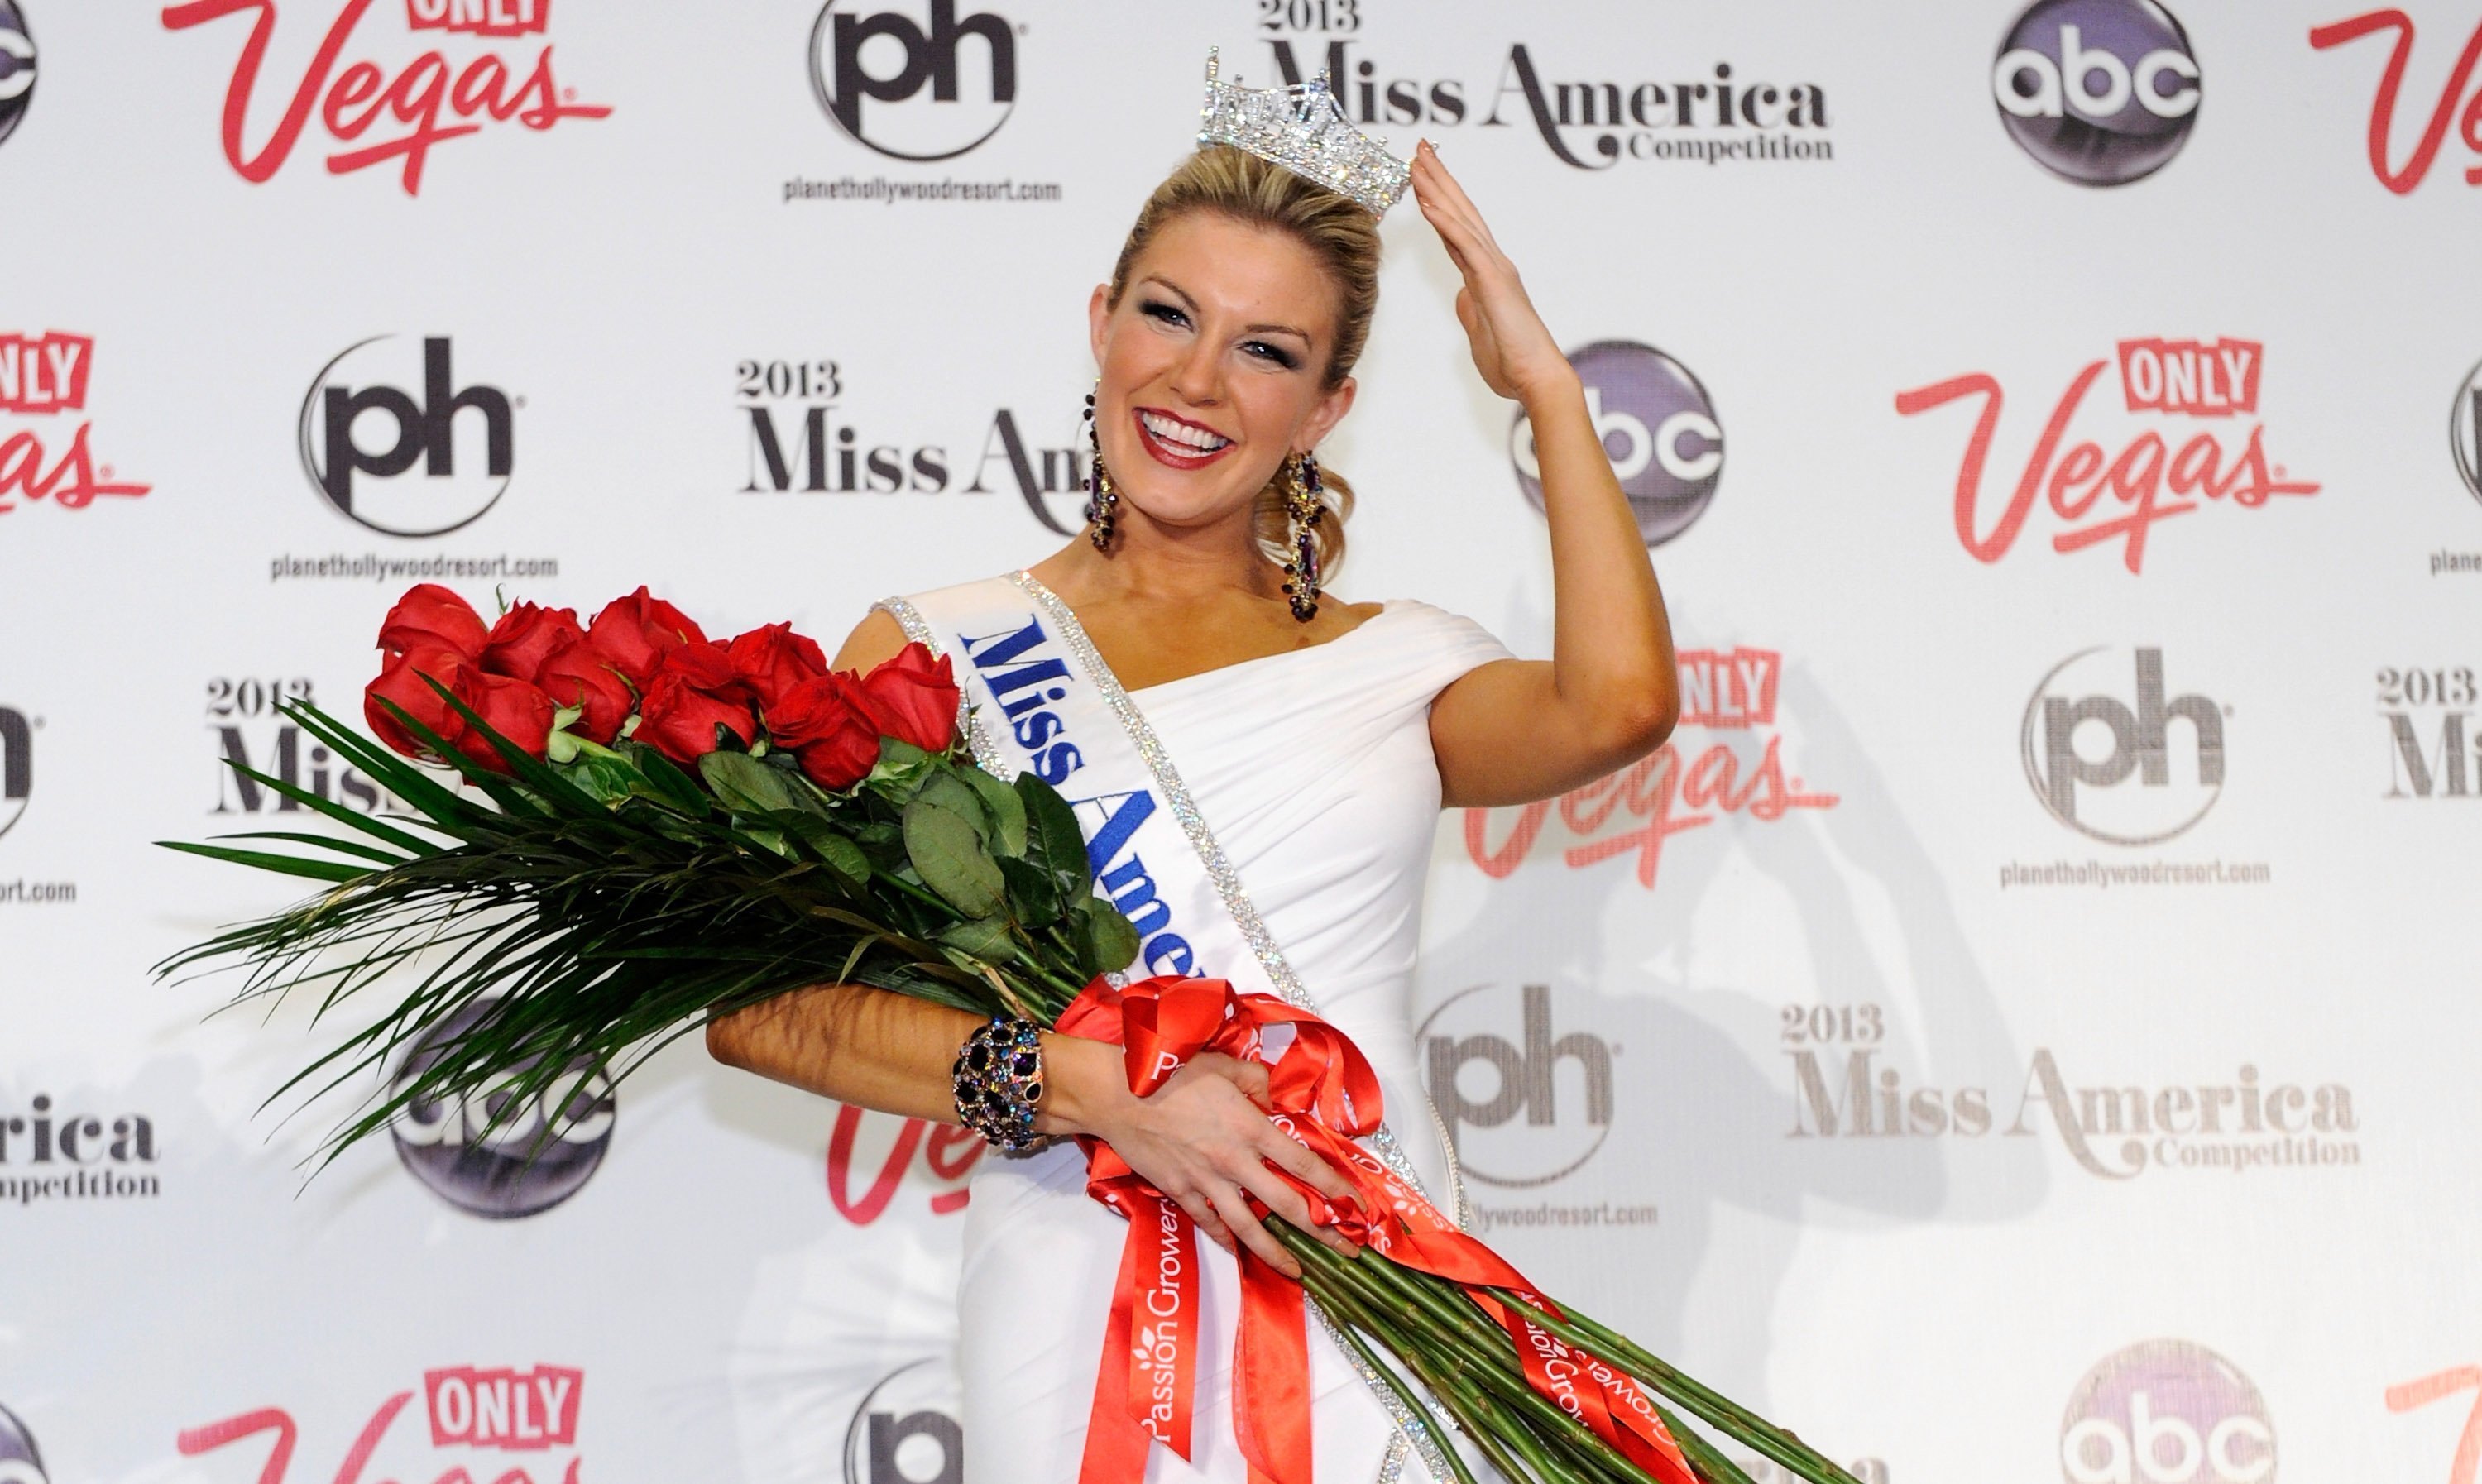 For the first time in the organization's history, Miss America will be led entirely by women -- and they're all former pageant winners. Regina Hopper was appointed president and CEO of the Miss America Organization, and Marjorie Vincent-Tripp was named...